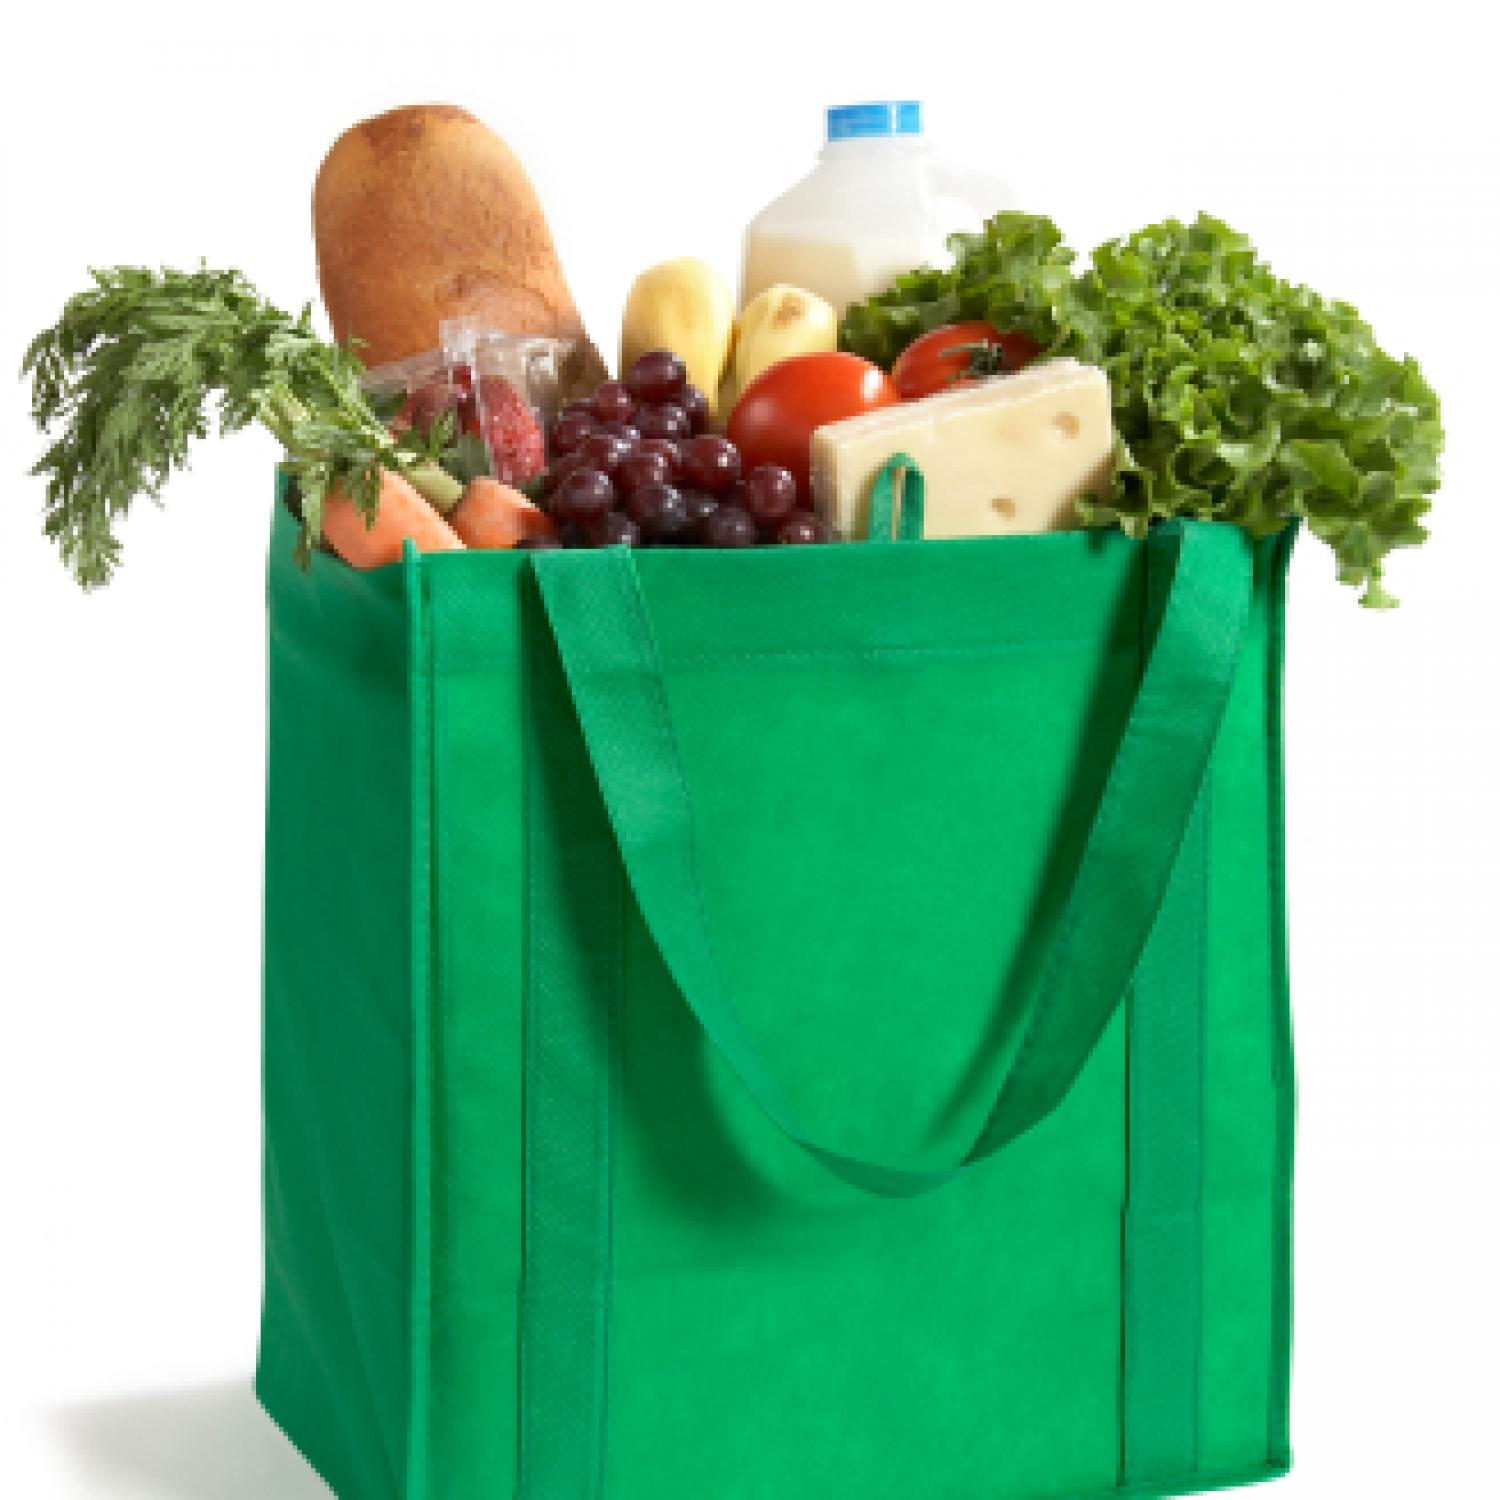 Reusable Grocery Bags Can Carry Harmful Norovirus | Parenting